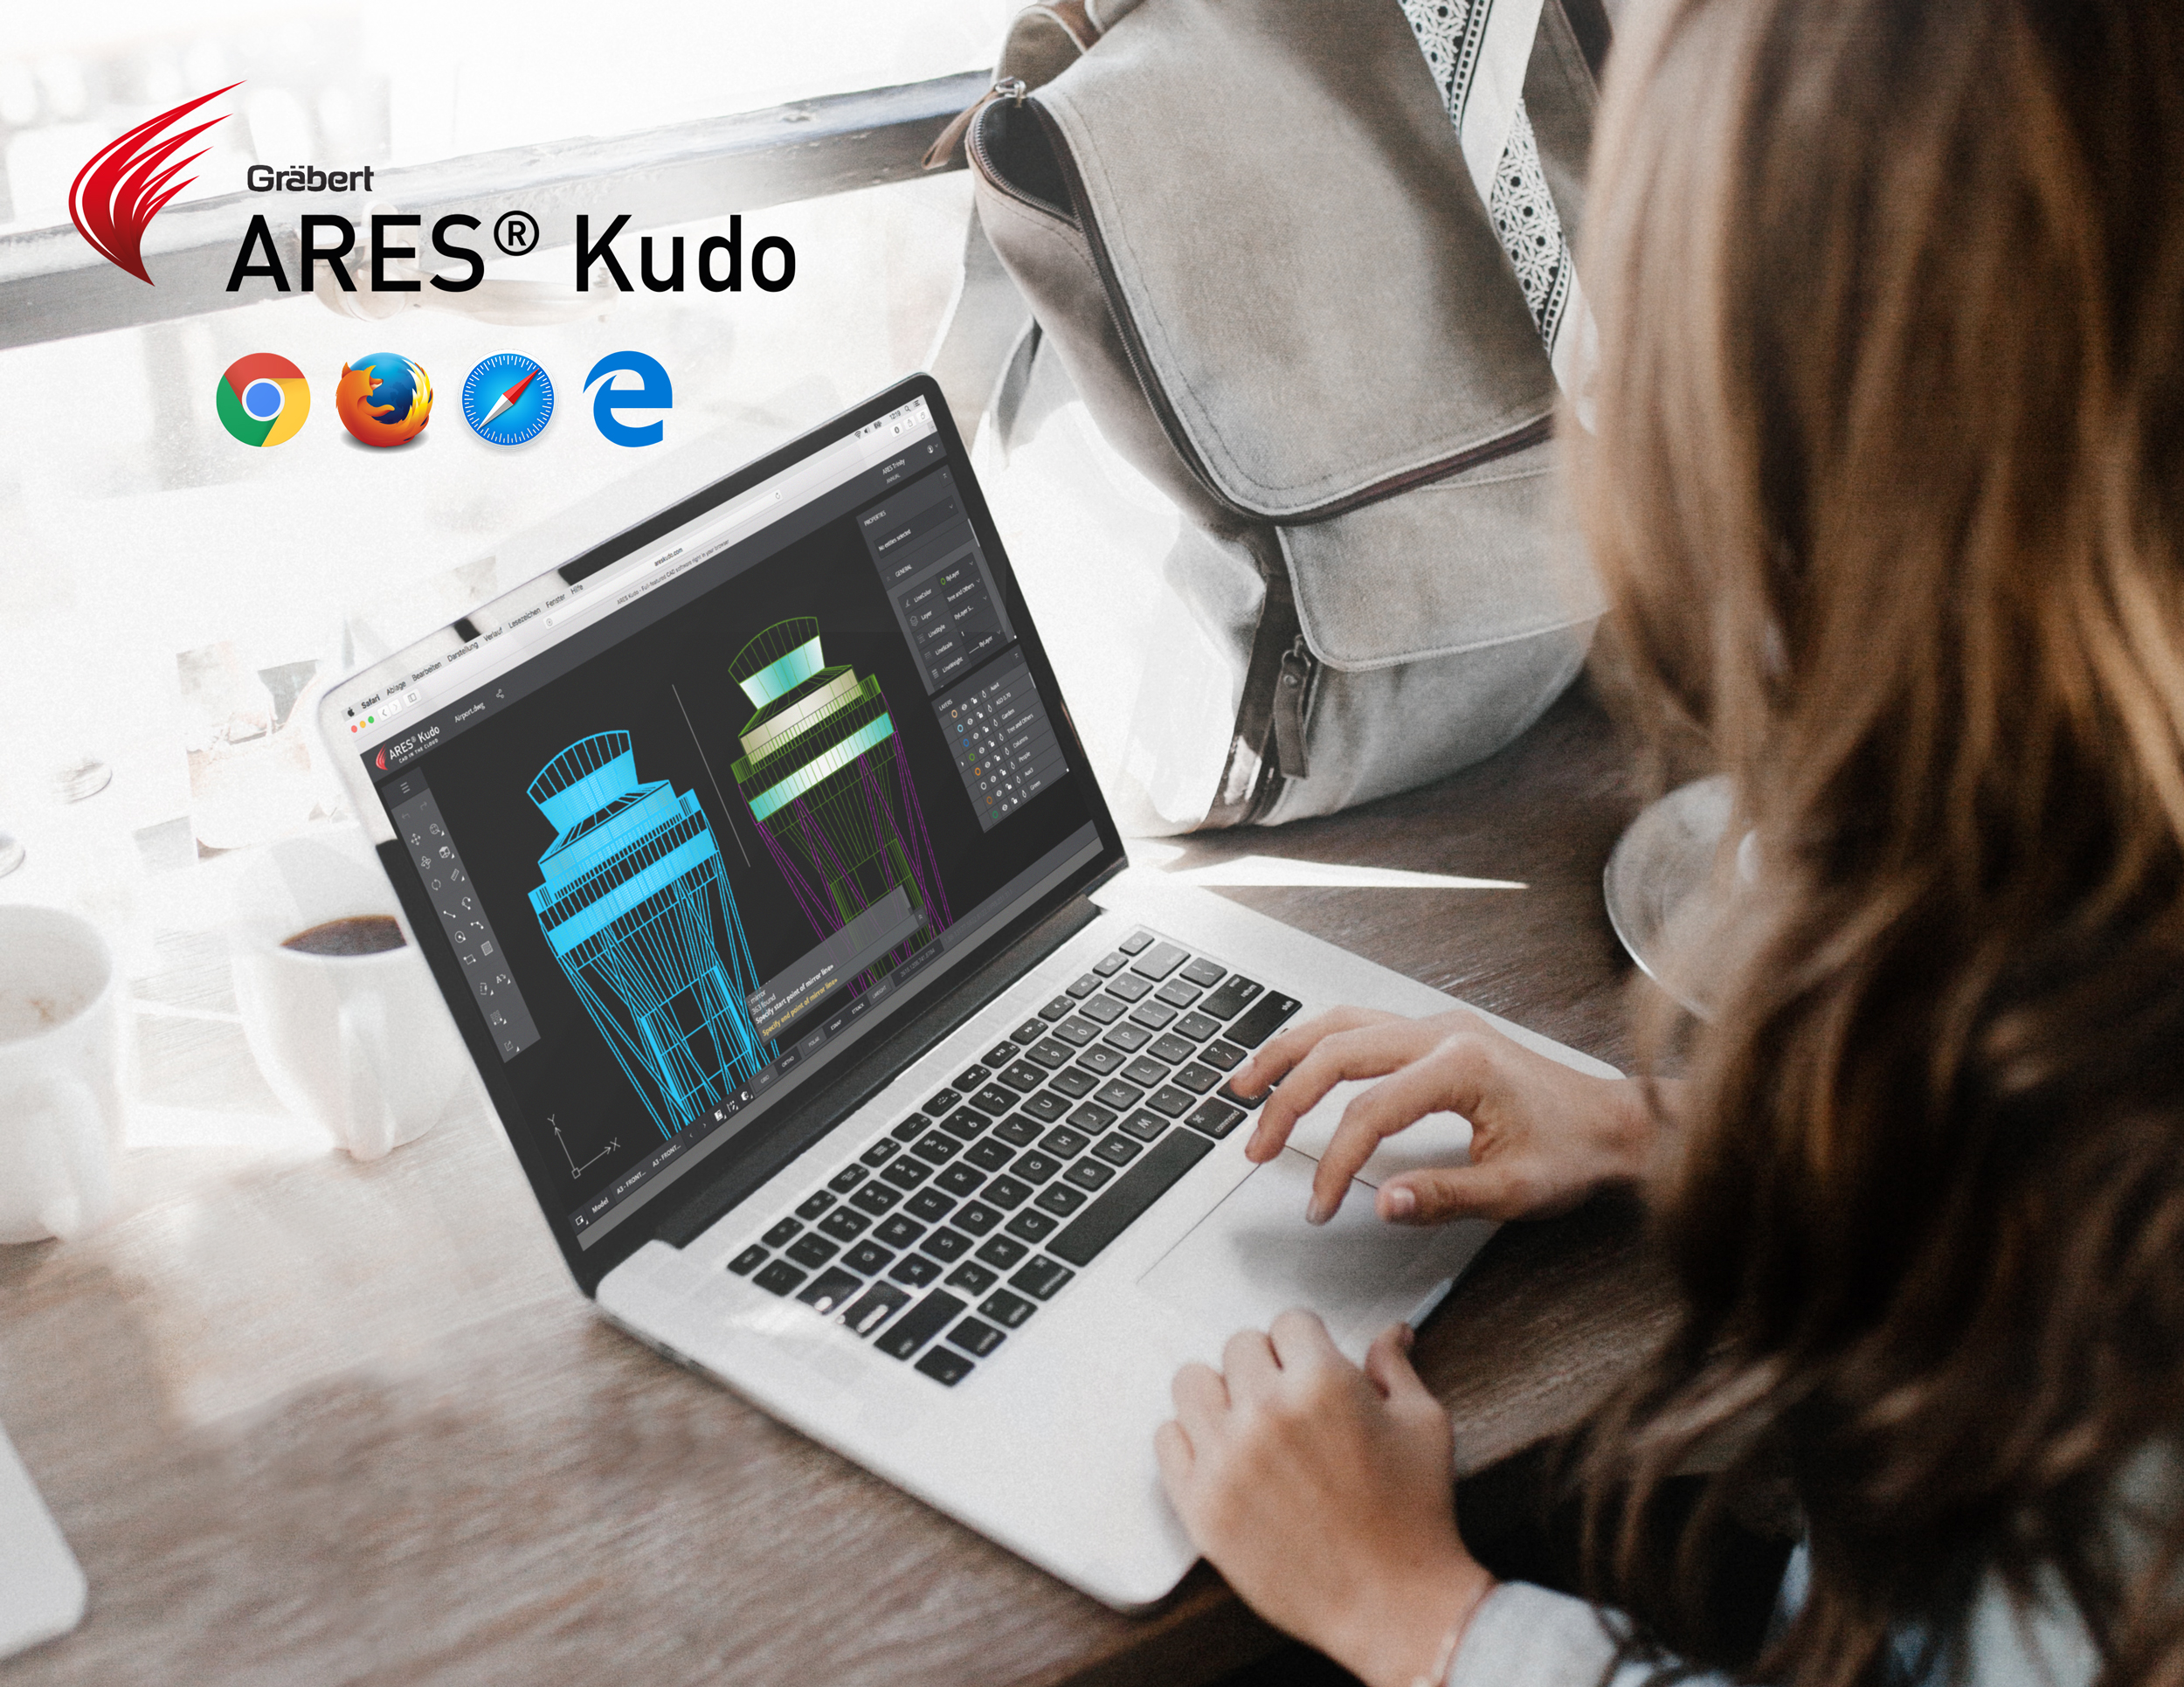 Ares Commander Demo - Online CAD with ARES Kudo